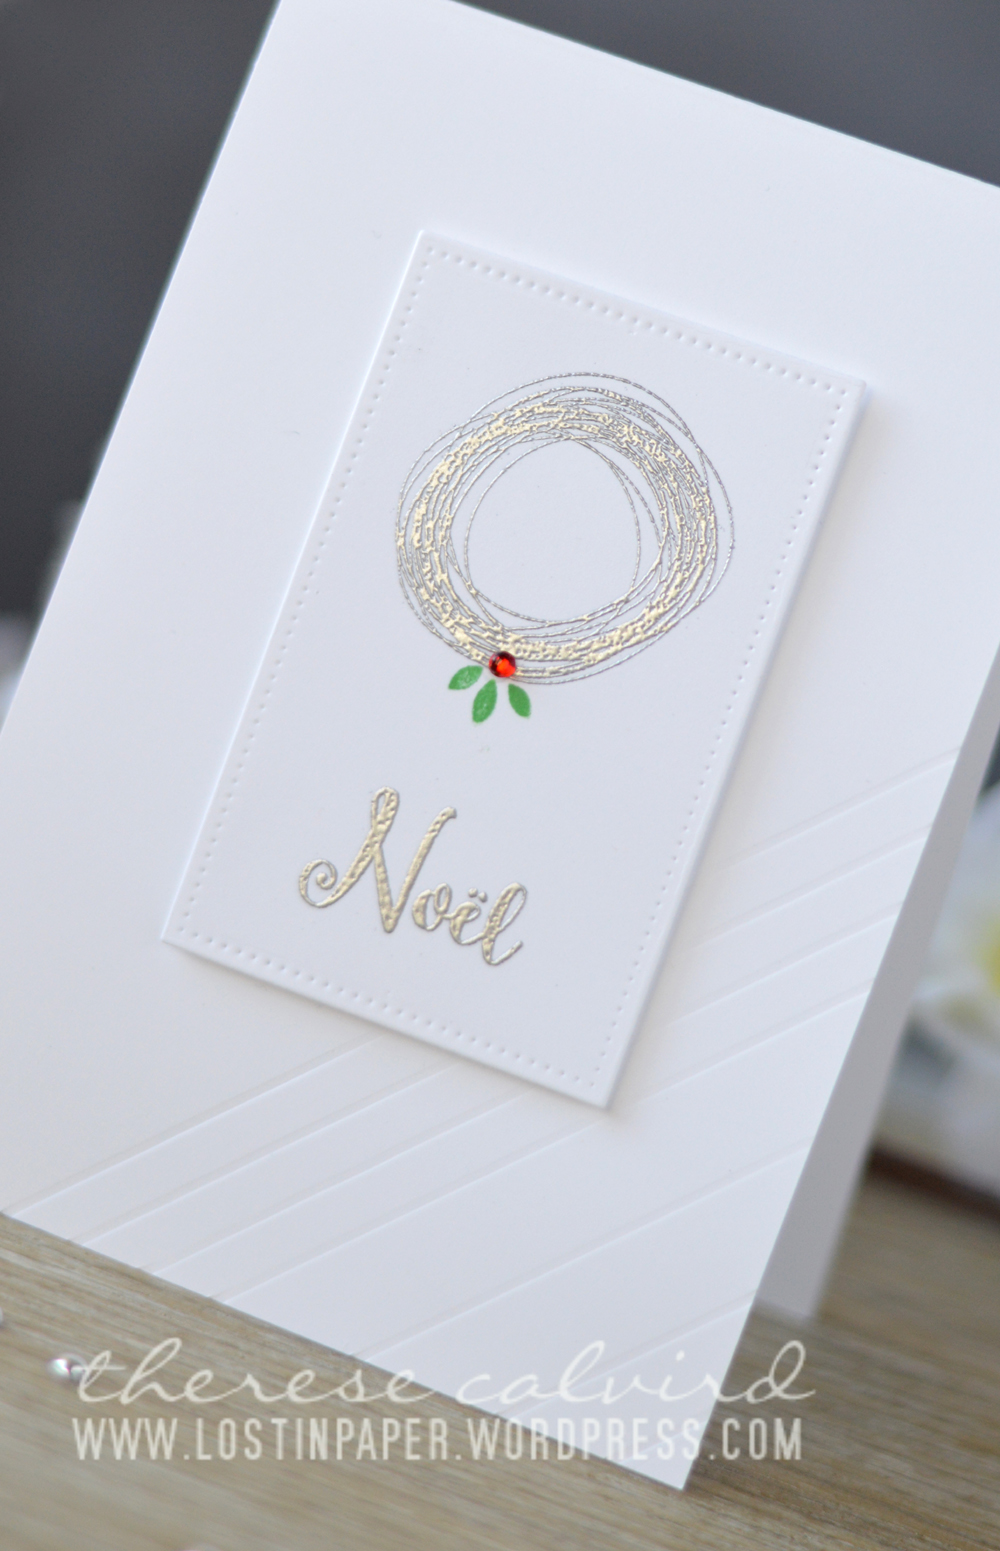 lostinpaper-penny-black-lets-chat-avery-elle-christmas-florals-christmas-card-video-2